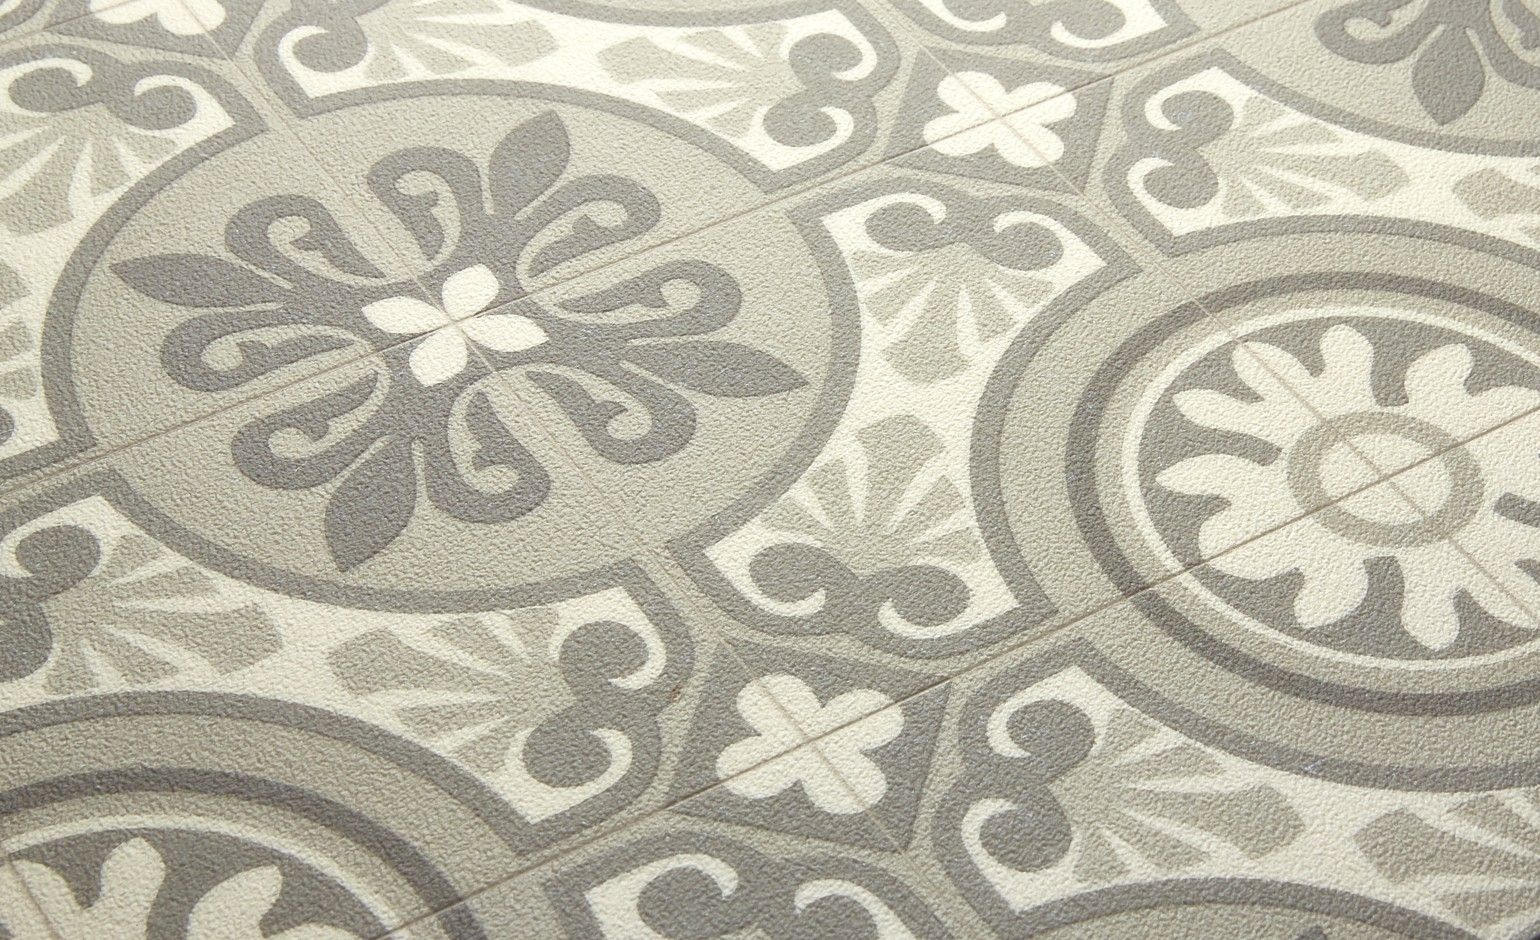 Saint maclou sol vinyle emotion carreau ciment beige rouleau 4 m sol vinyle collection - Lino heilige maclou ...